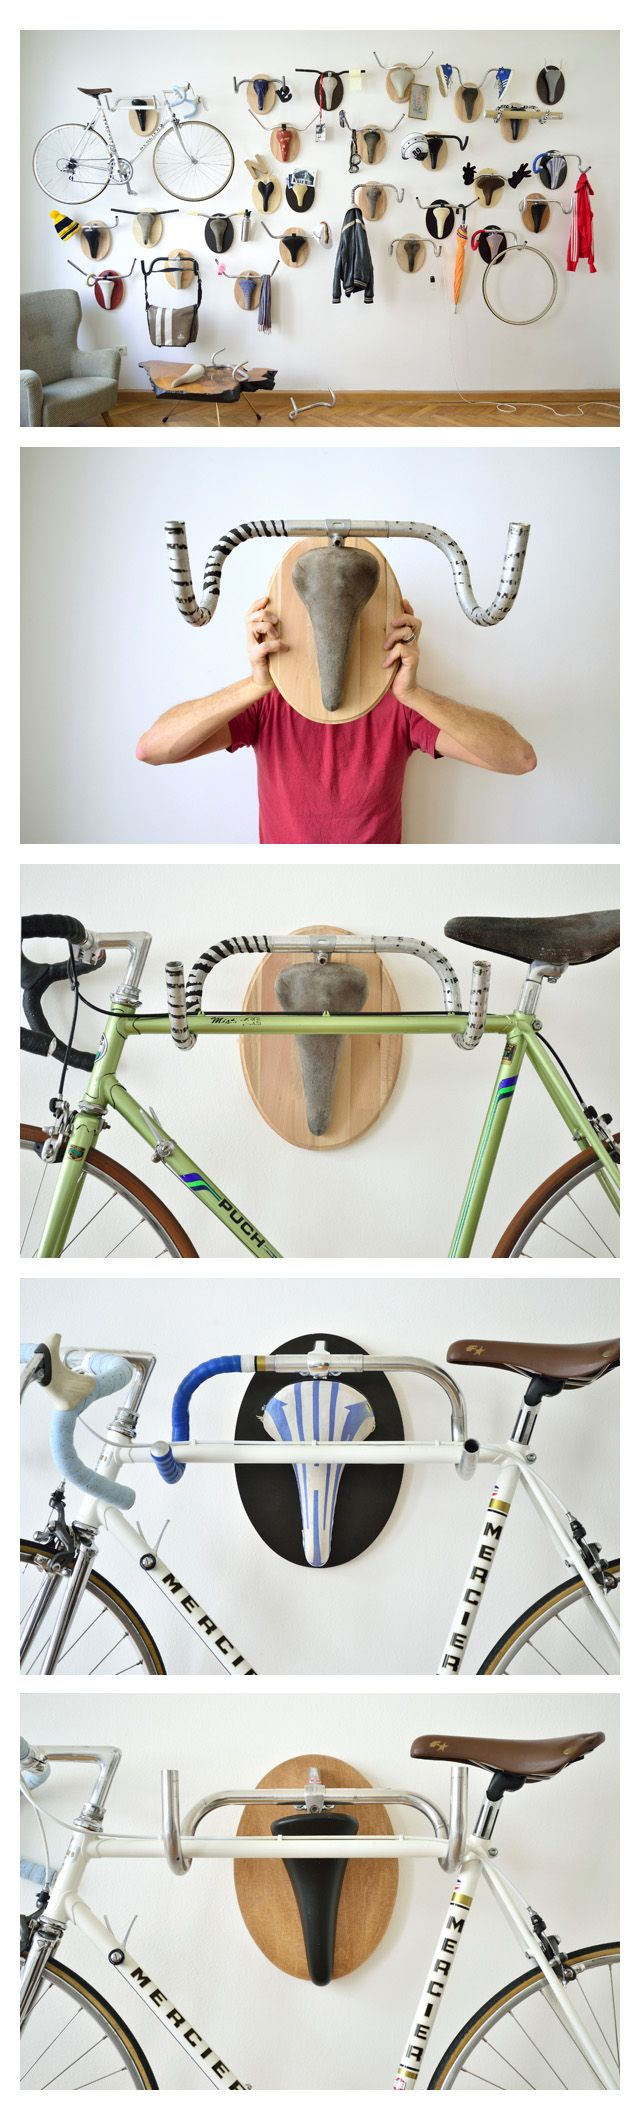 Super creatief idee! (Bike rack)